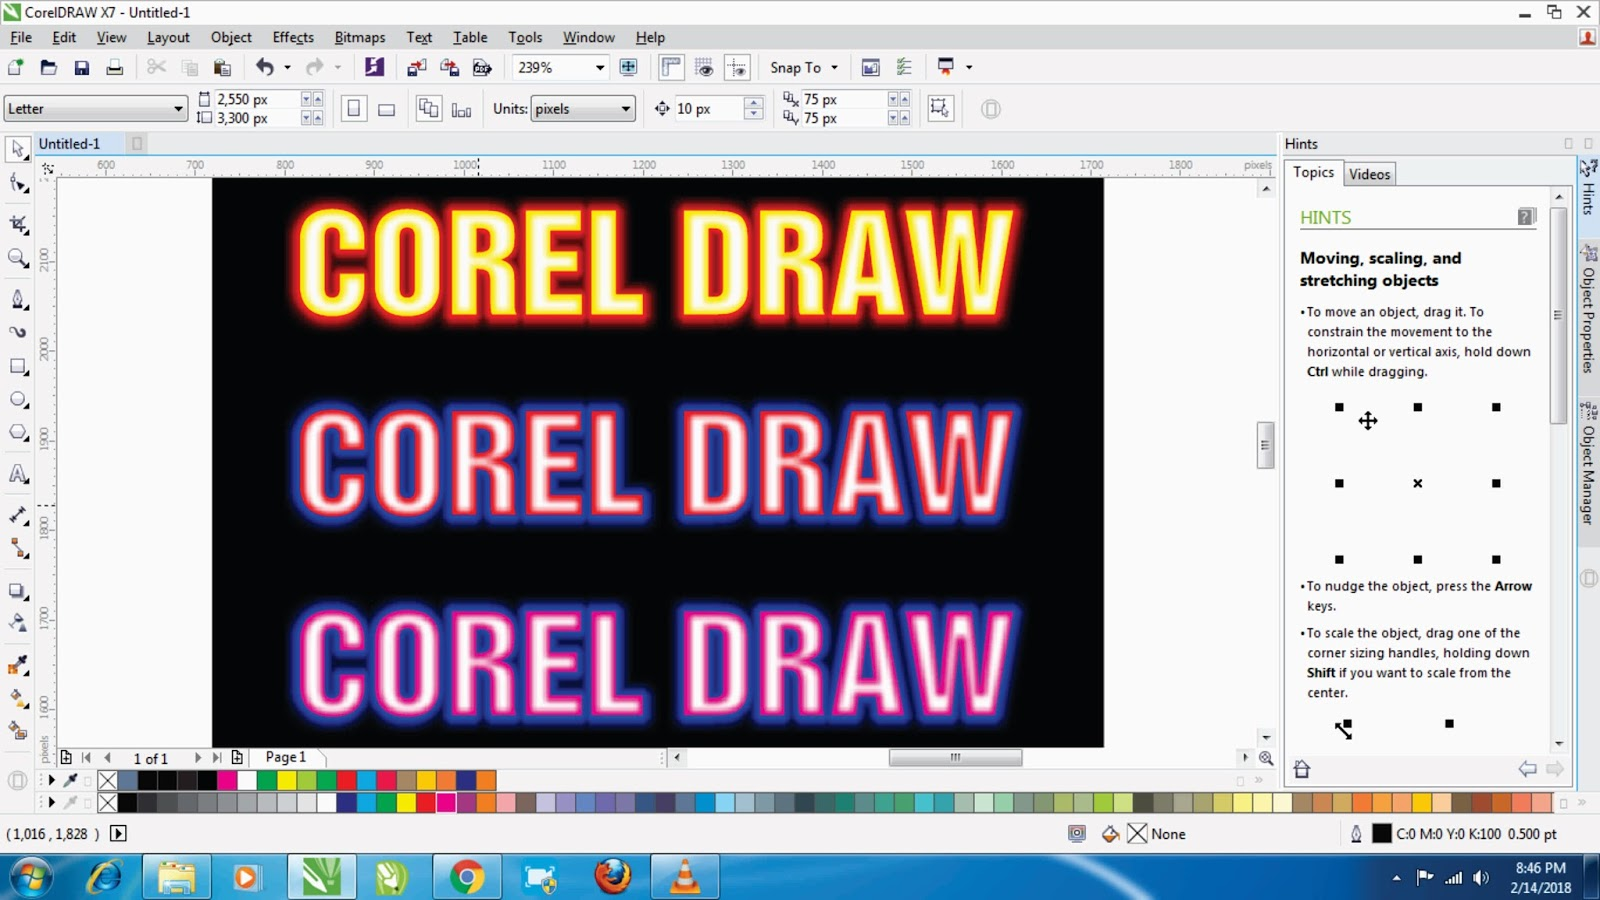 HOW TO CREATE LIGHT EFFECT IN COREL DRAW IN SIMPLY WAY